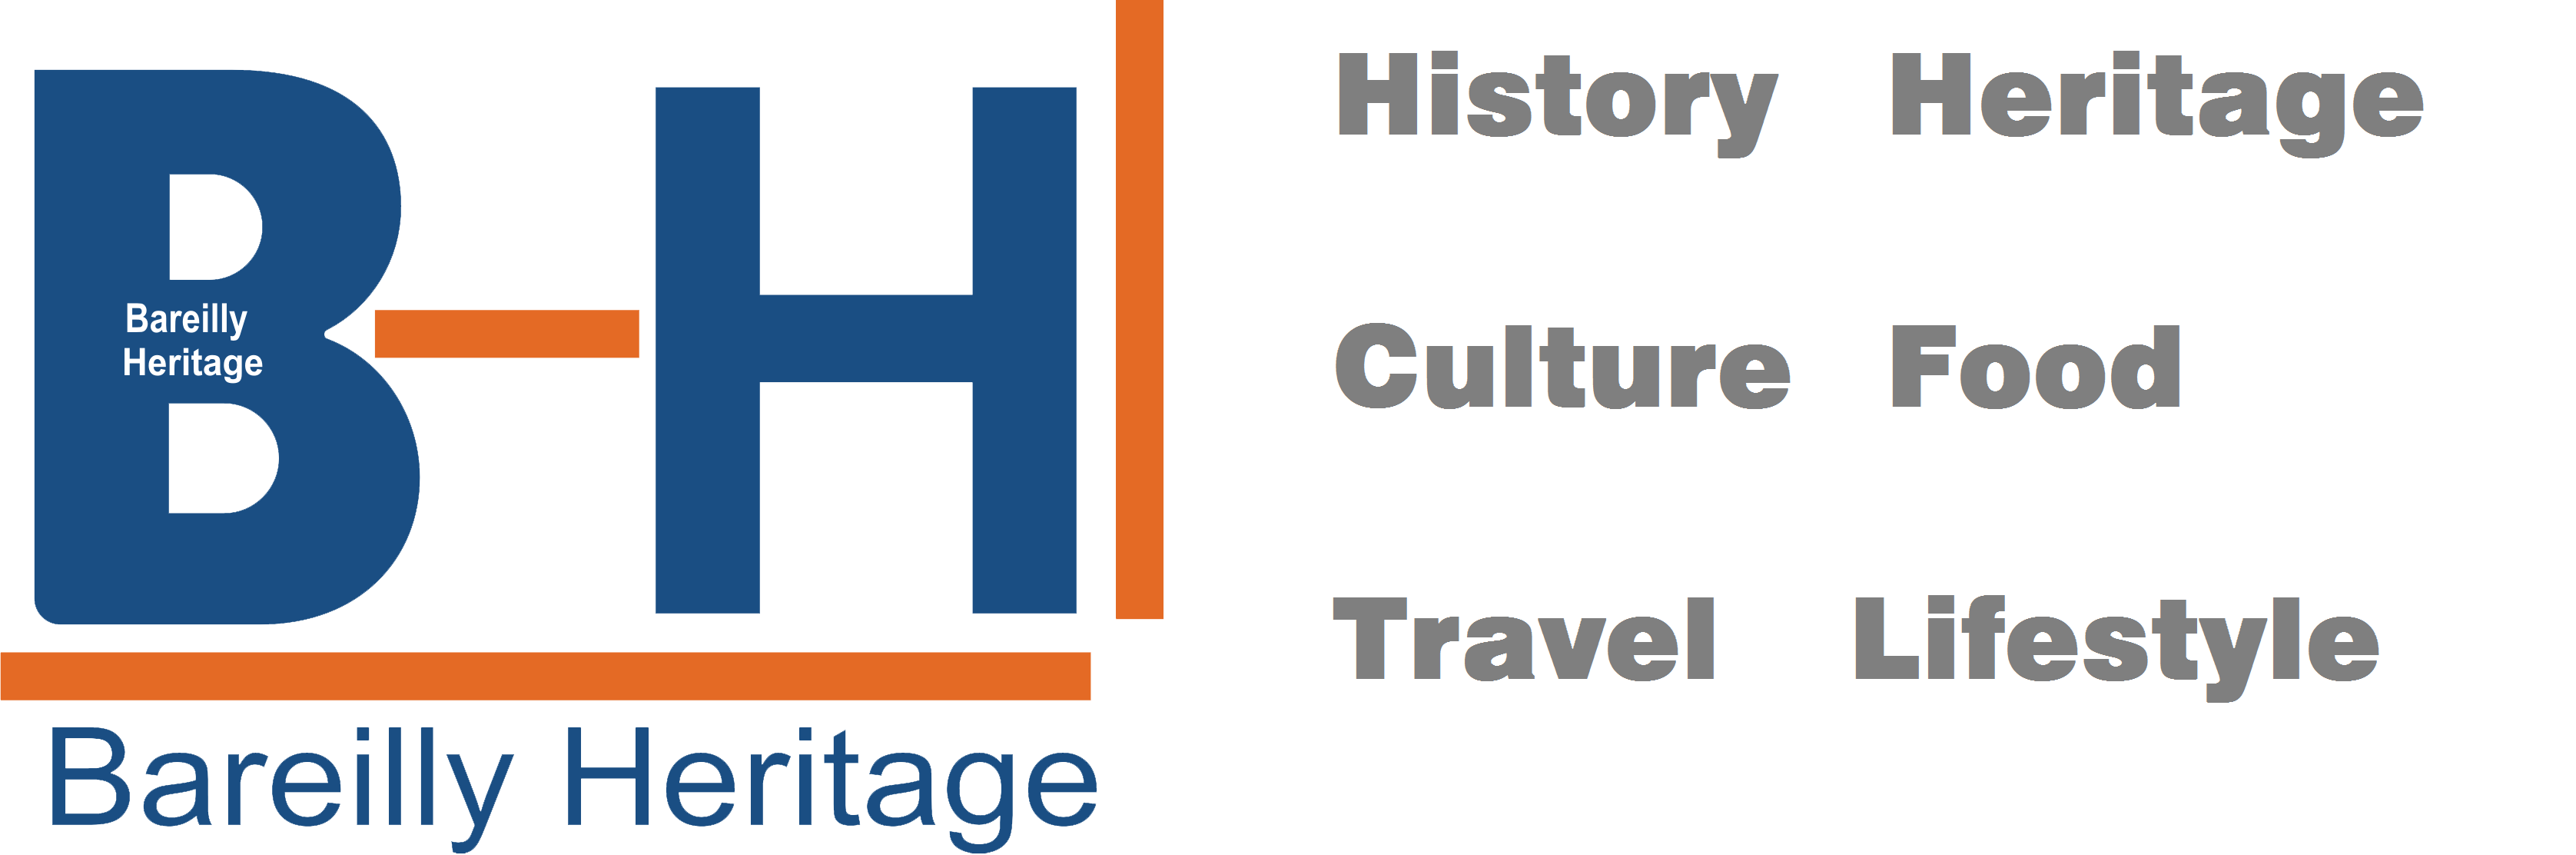 History, Heritage,Culture, Food, Travel, Lifestyle